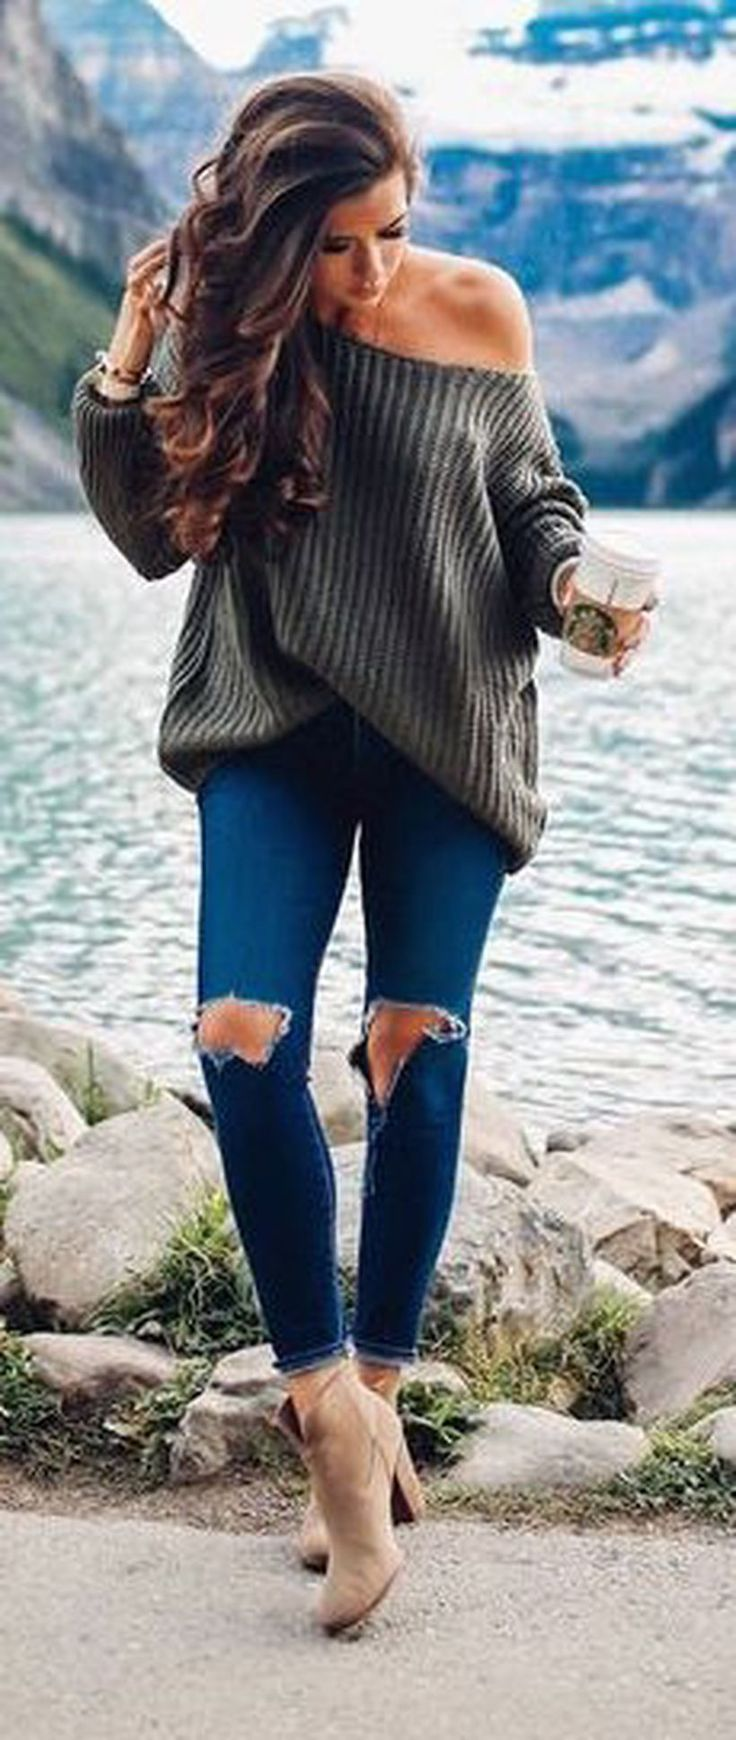 best 25+ fashion trends ideas on pinterest | 2017 fashion trends